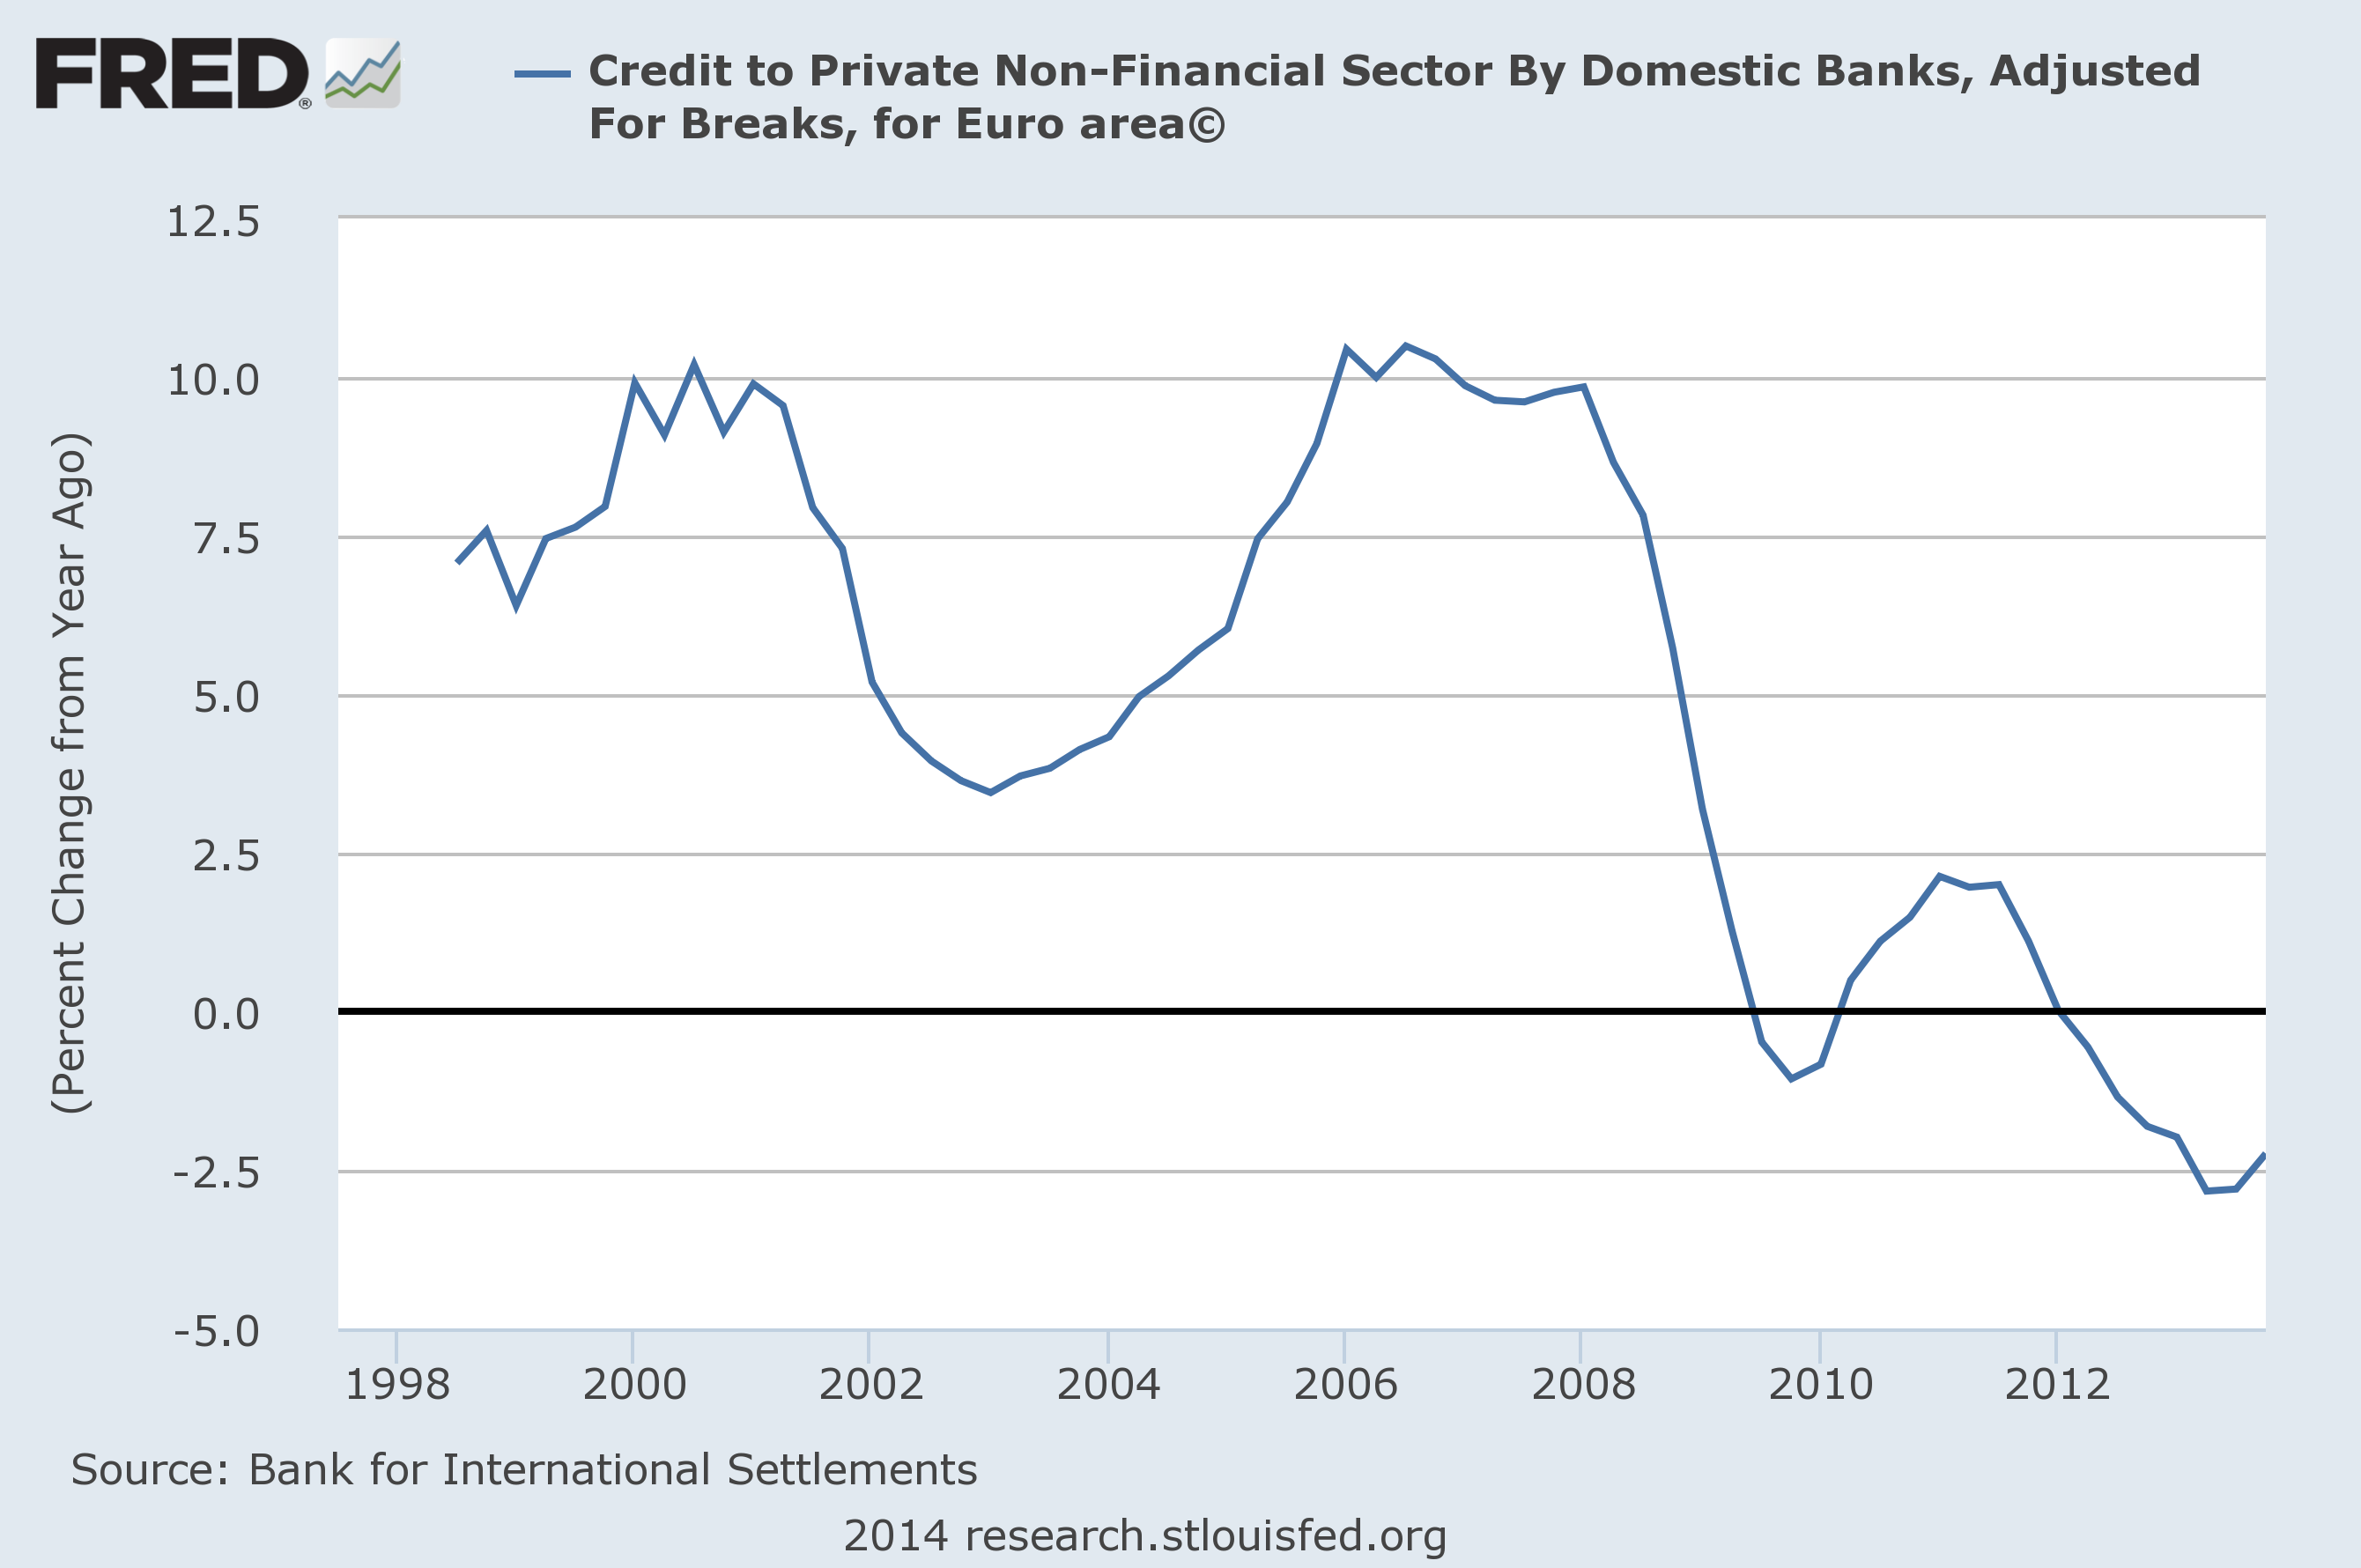 Euro Area Private Nonfinancial Credit from Banks